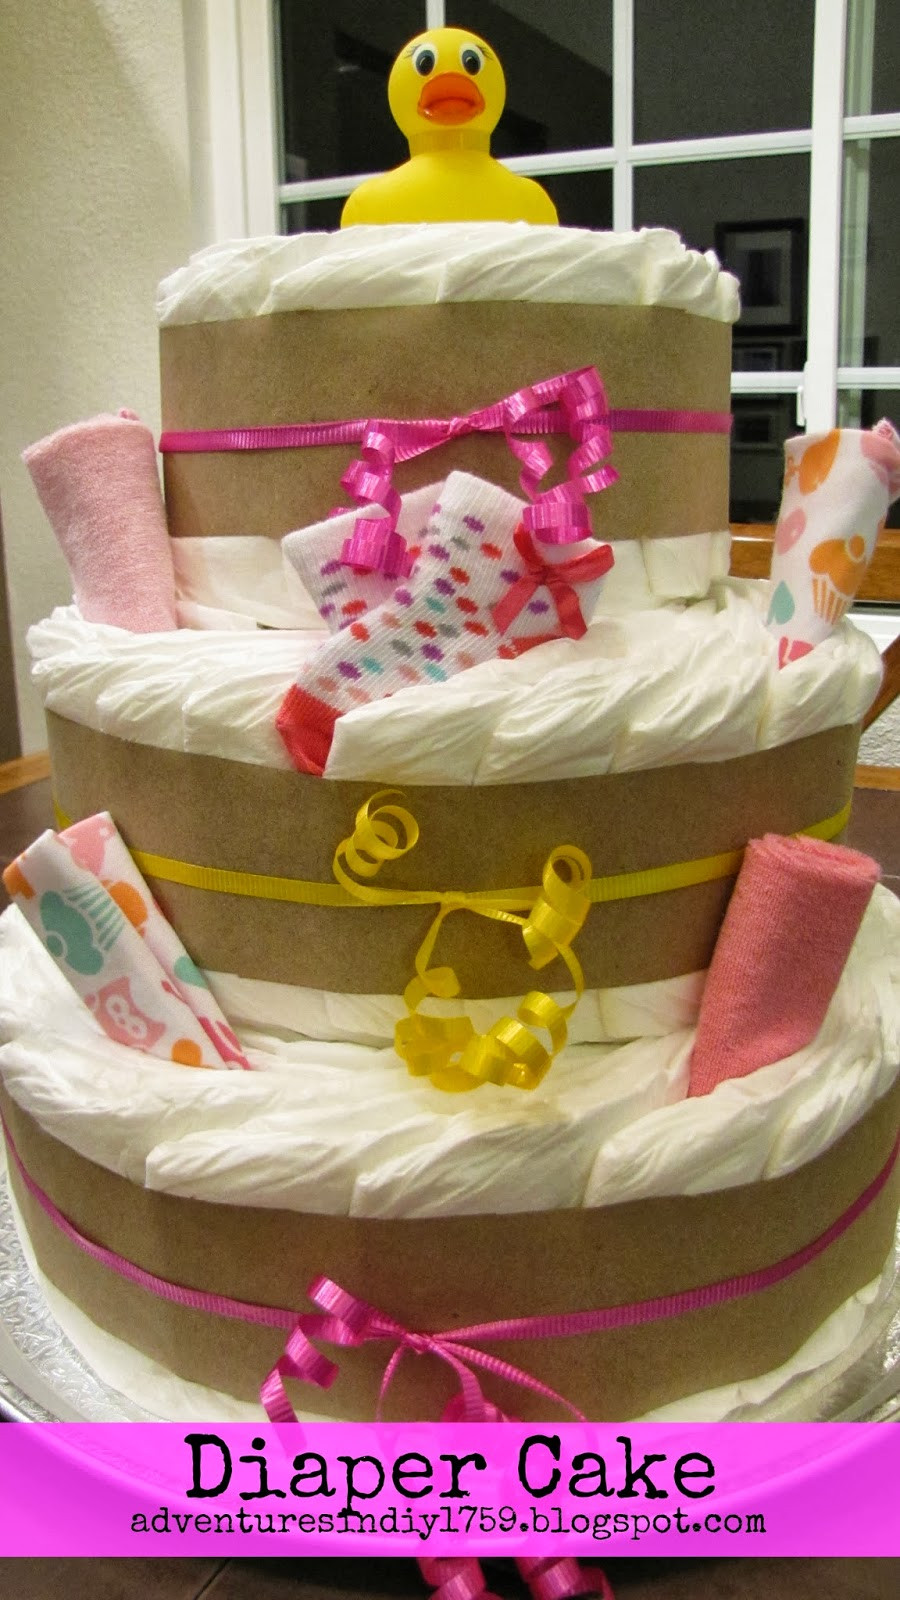 Best ideas about DIY Baby Shower Cakes . Save or Pin Adventures in DIY Baby Shower Diaper Cake Now.